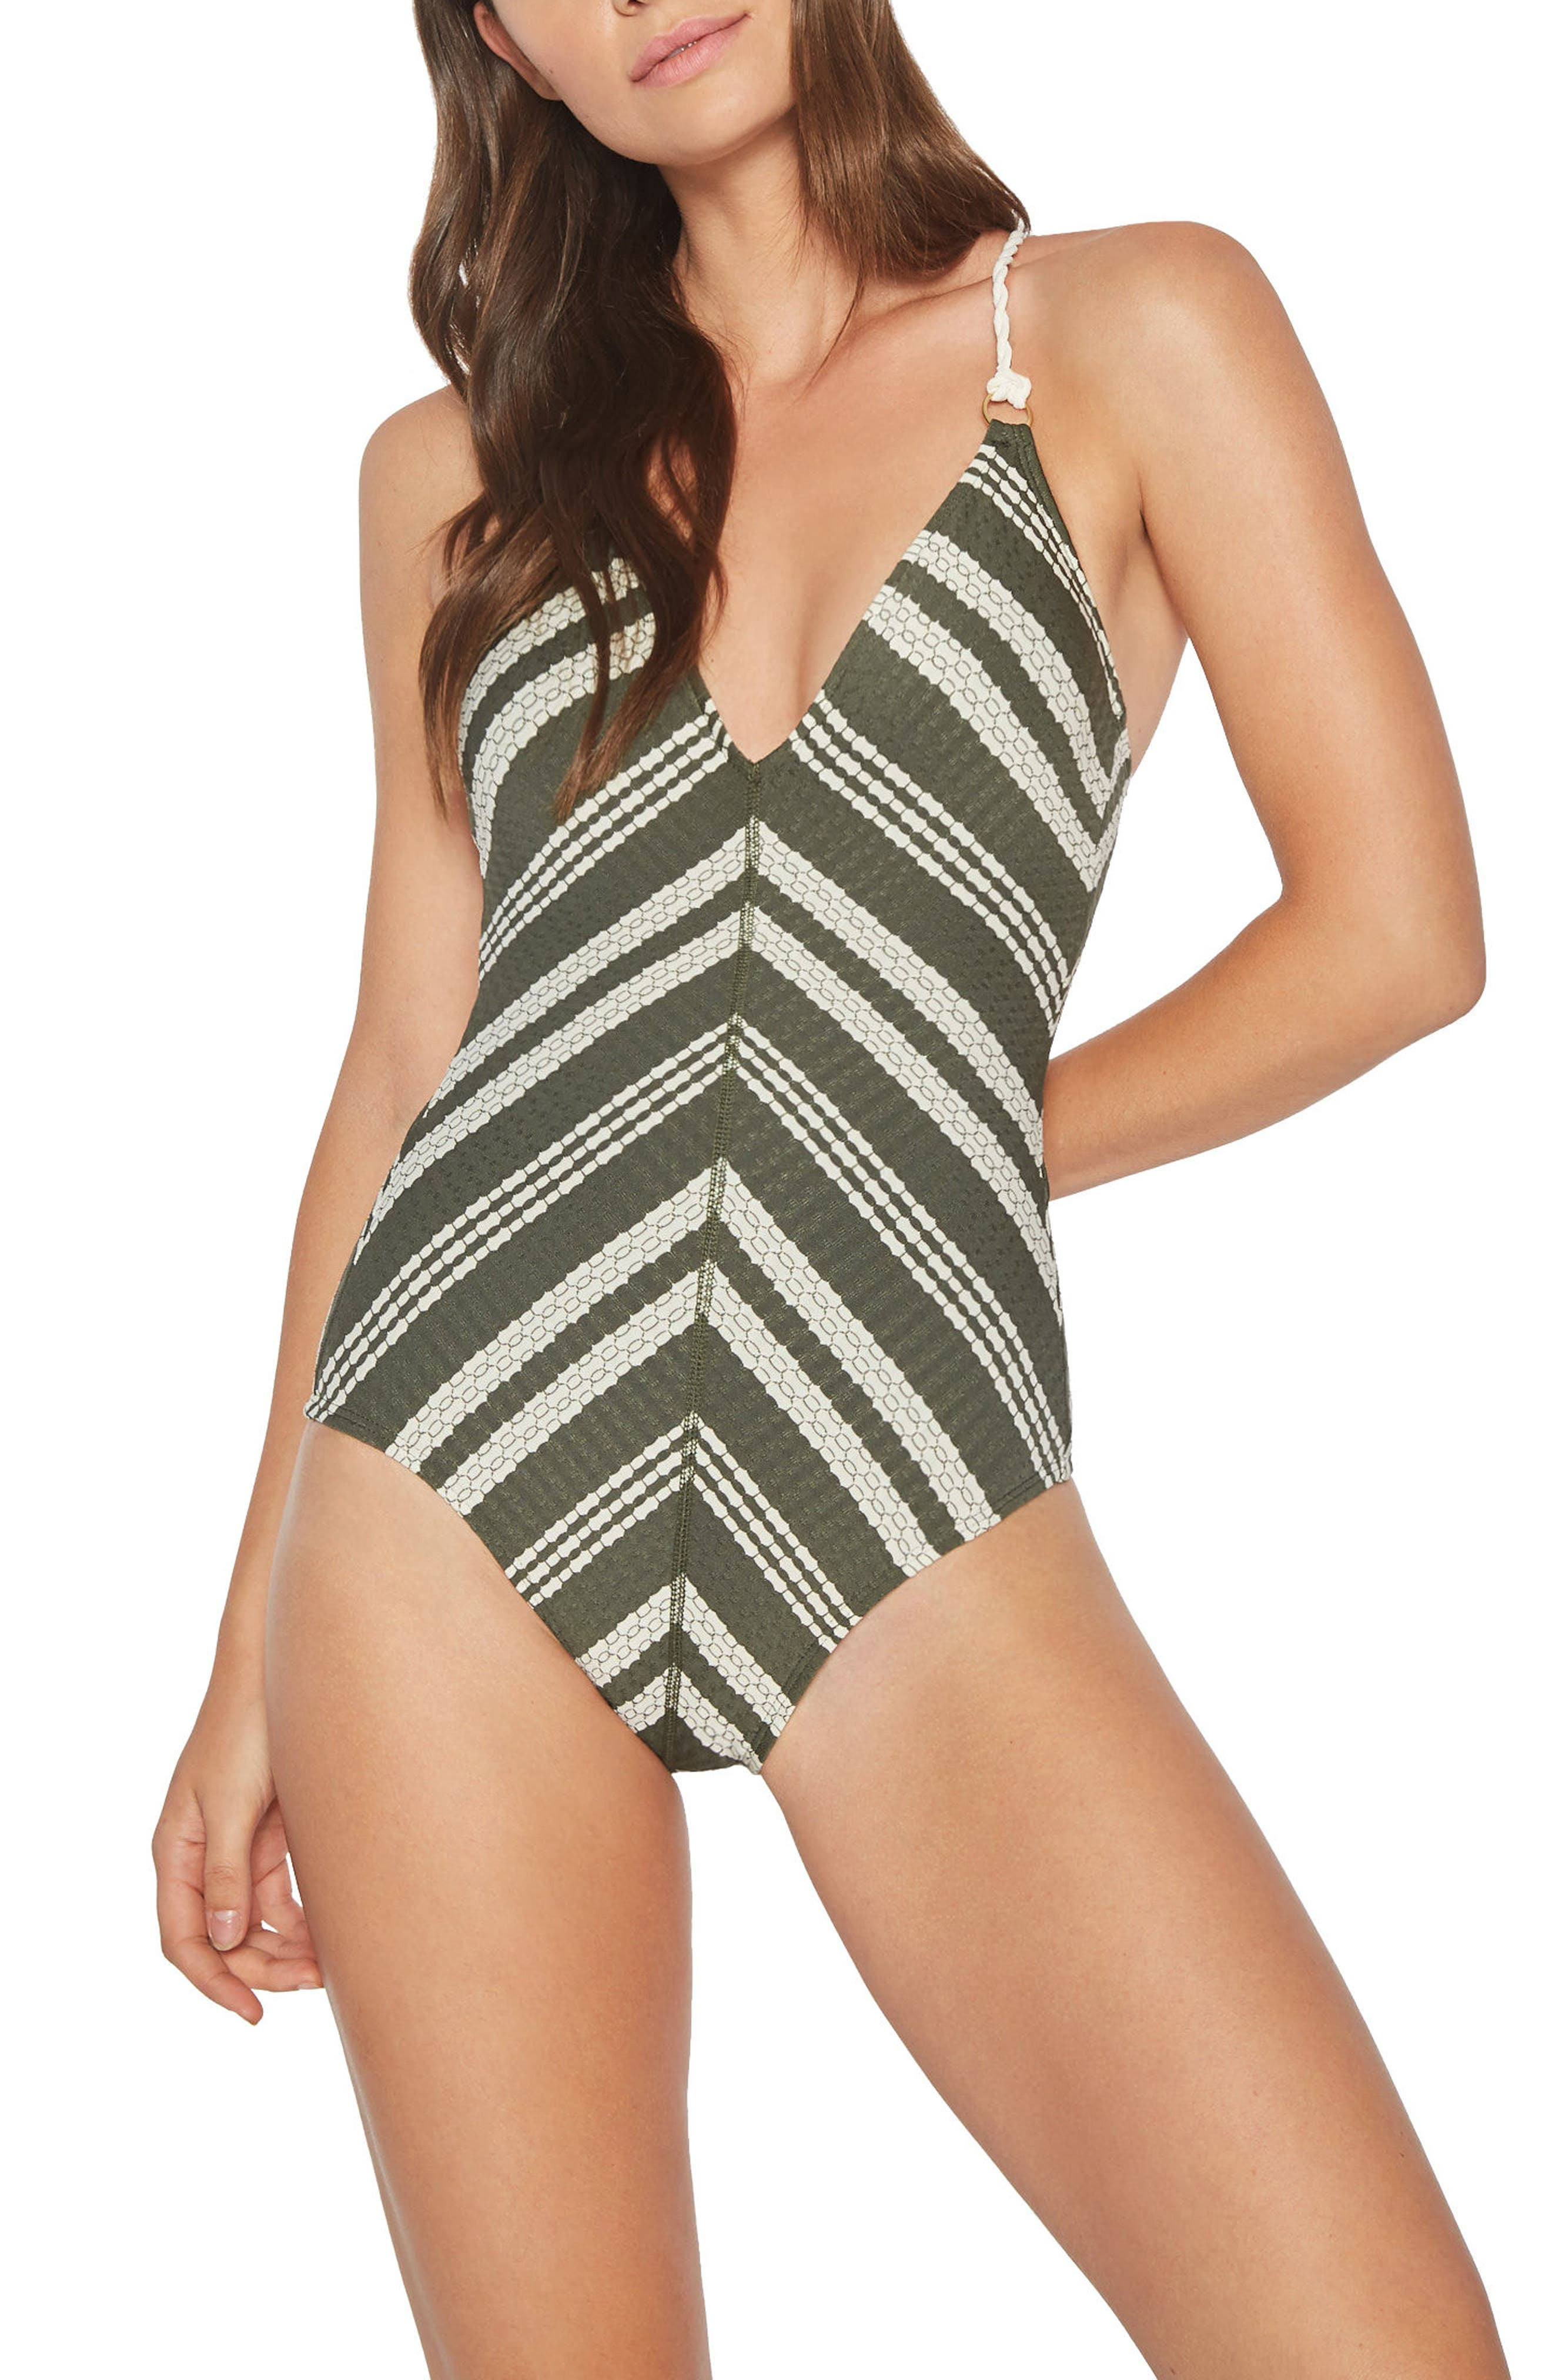 Livvy One-Piece Swimsuit,                             Main thumbnail 1, color,                             Deep Forest